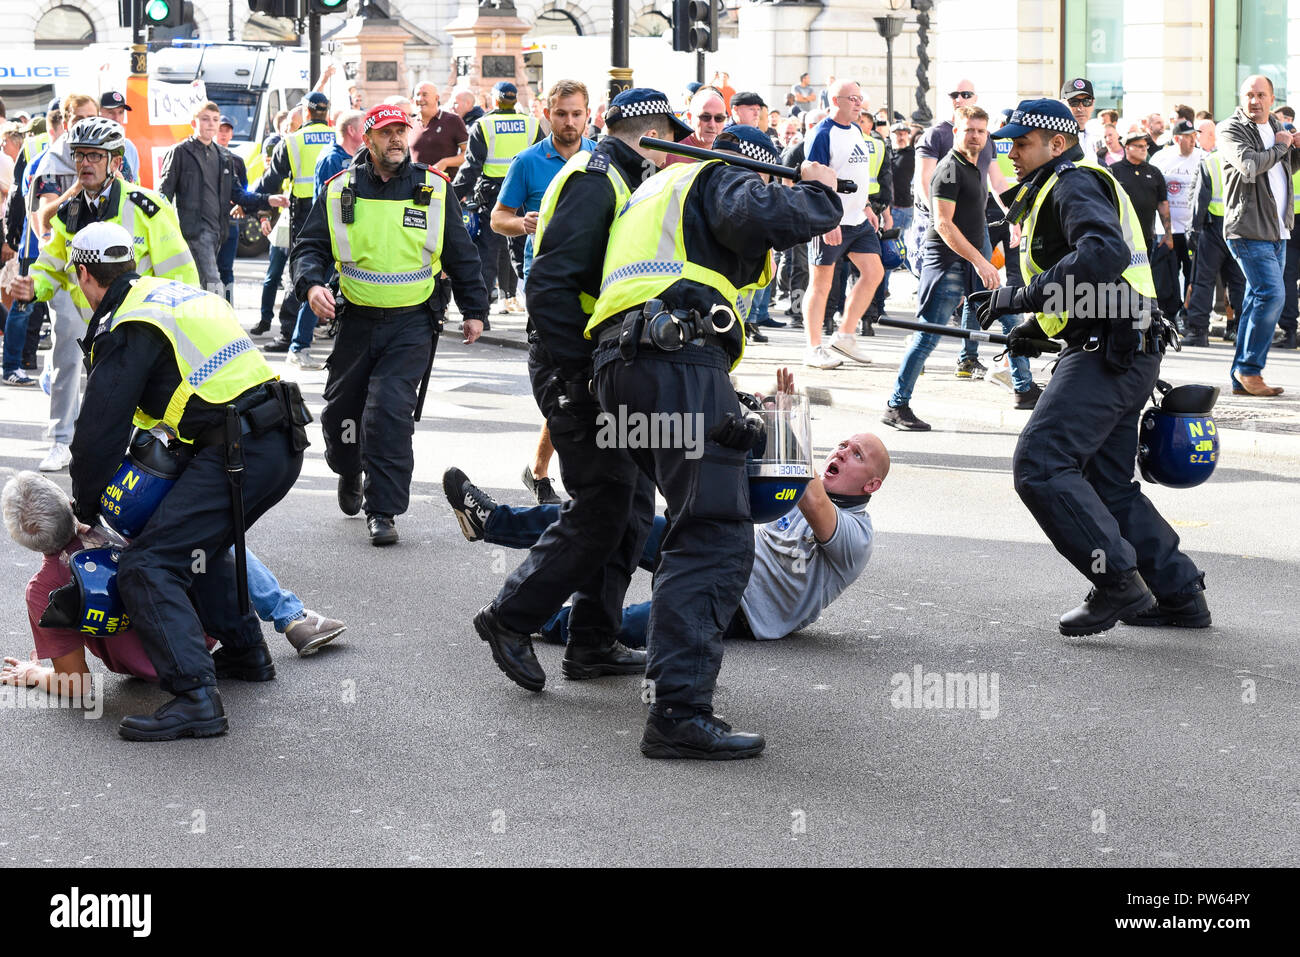 westminster-london-uk-13th-october-2018-the-right-wing-dfla-are-marching-towards-parliament-in-protest-against-returning-jihadists-treatment-of-veterans-migrants-rape-gangs-and-groomers-weak-sentencing-knife-crime-police-cuts-political-cover-ups-and-terrorism-regarded-as-racist-by-other-groups-such-as-stand-up-to-racism-an-opposition-march-has-been-organised-beginning-in-portland-place-to-also-head-towards-parliament-scuffles-with-police-took-place-credit-avpics-alamy-live-news-PW64PY.jpg